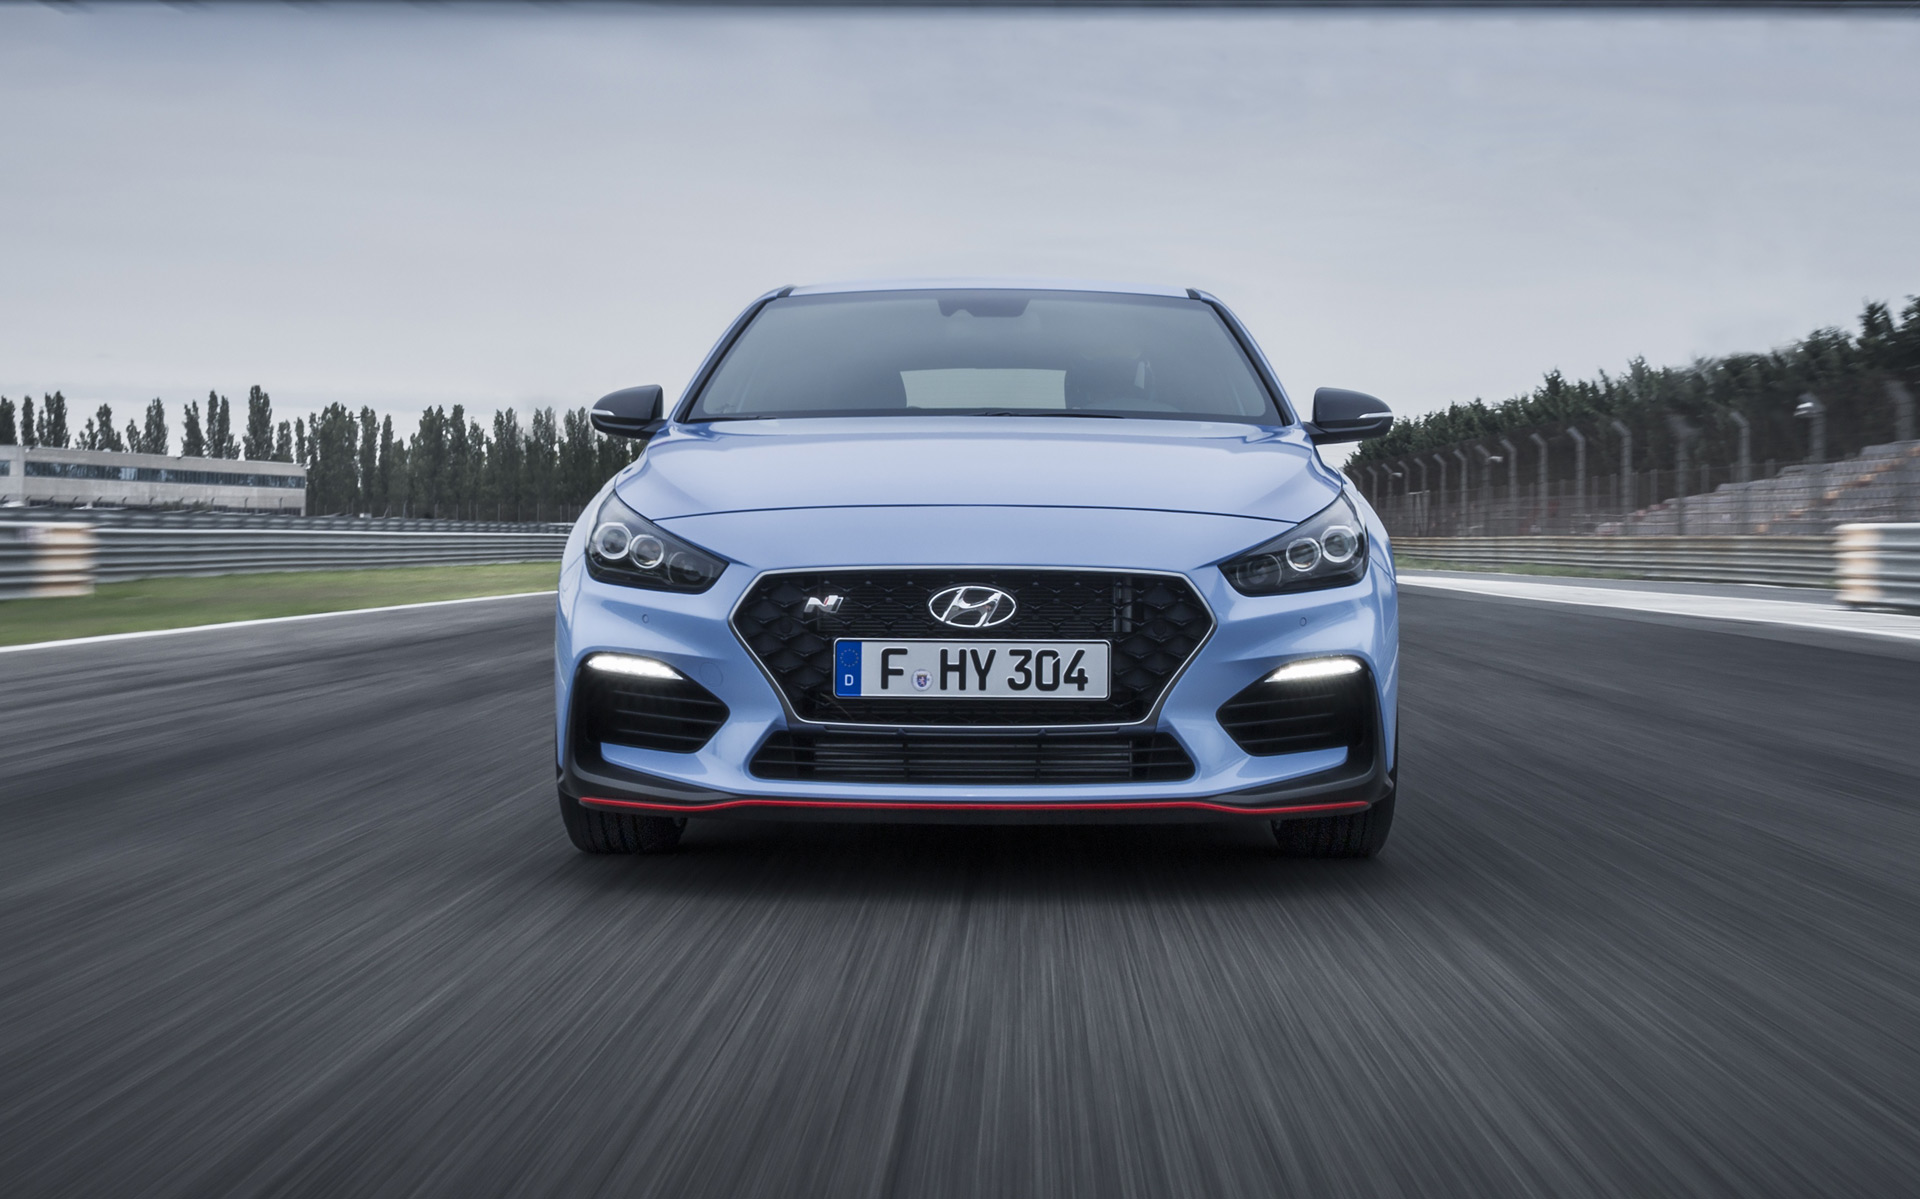 2018 hyundai i30 n korea 39 s golf gti rival revealed. Black Bedroom Furniture Sets. Home Design Ideas